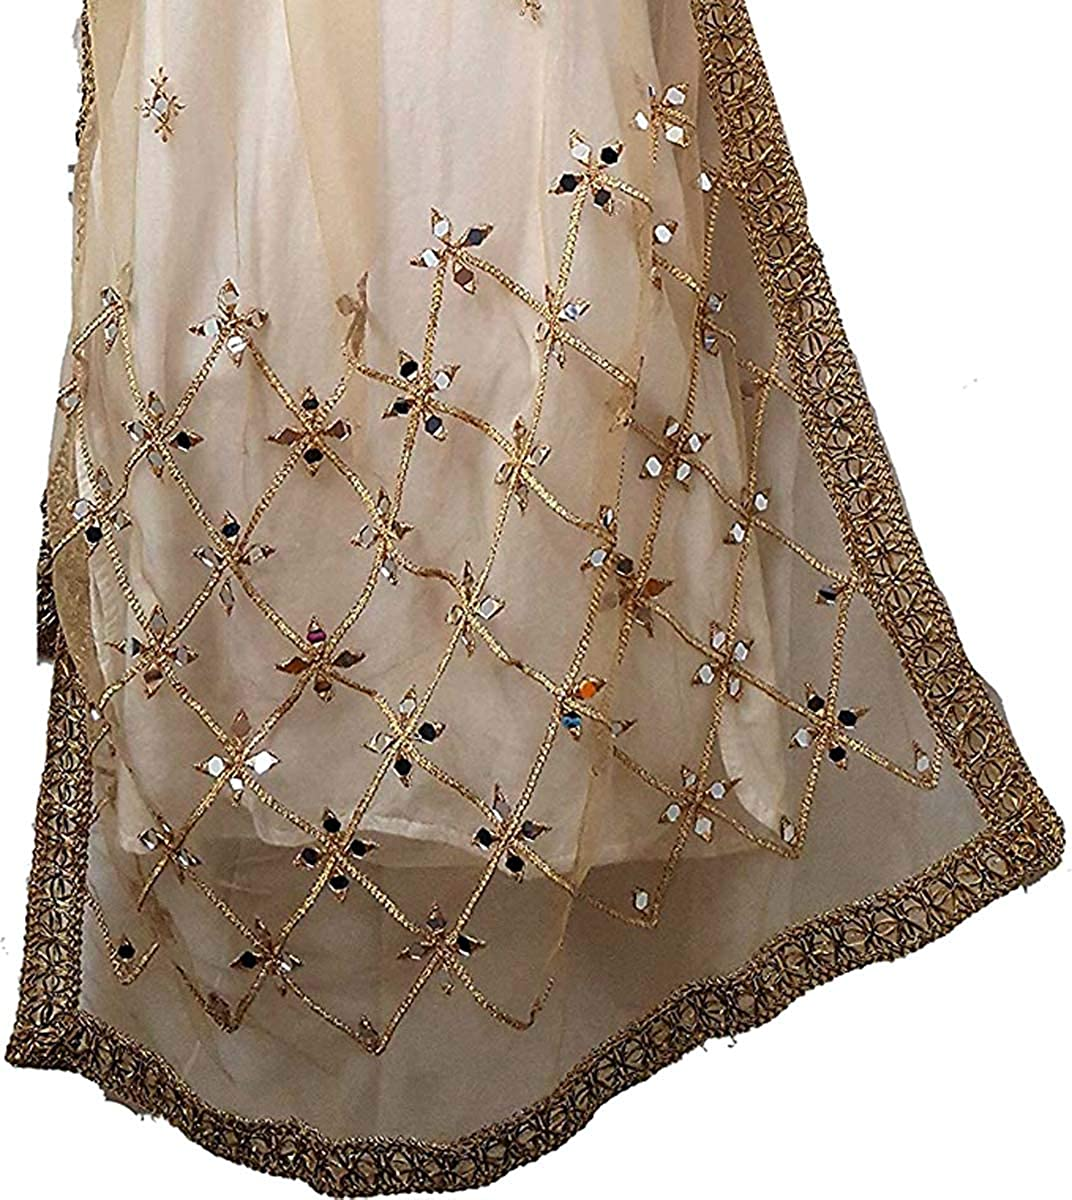 New White Net dupatta head cover ladies Scarf With Golden Kundan Stones